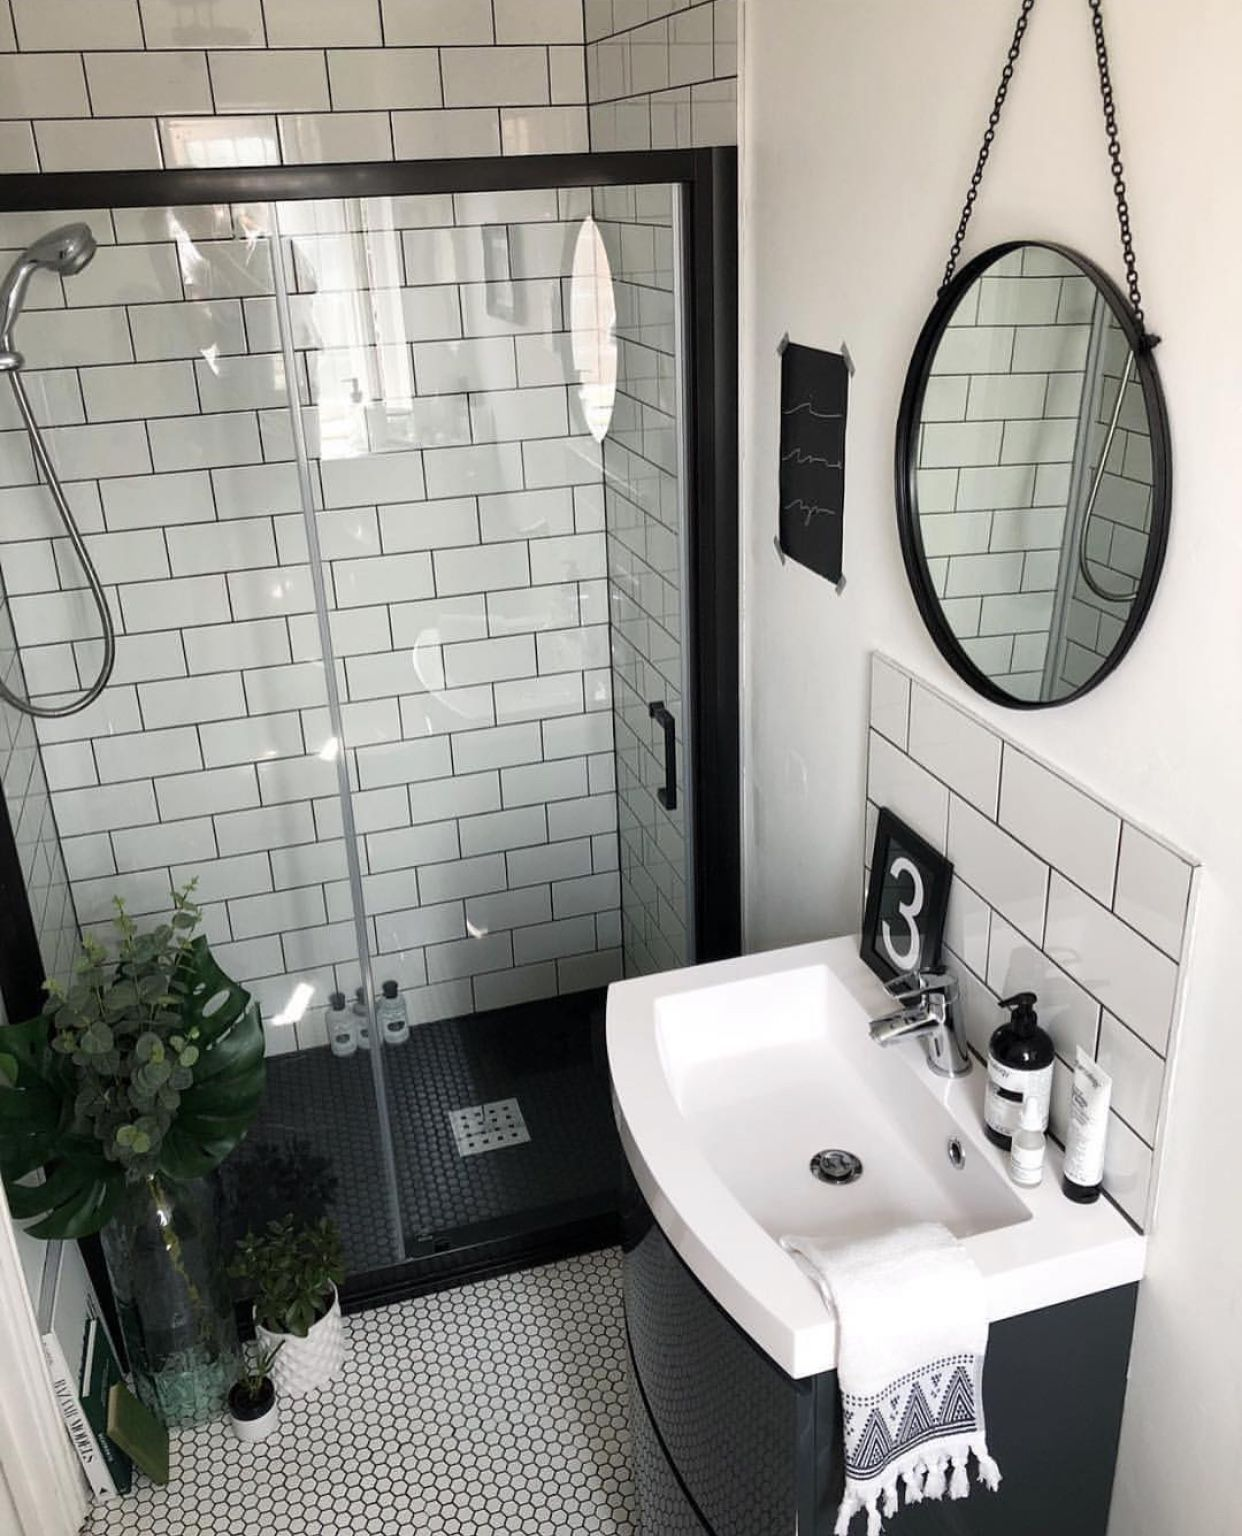 Small Bathroom Choosing Bathroom Flooring Is Far Different From Choosing Flooring In Other Parts Of The Ho Small Shower Room Bathroom Design Small Shower Room